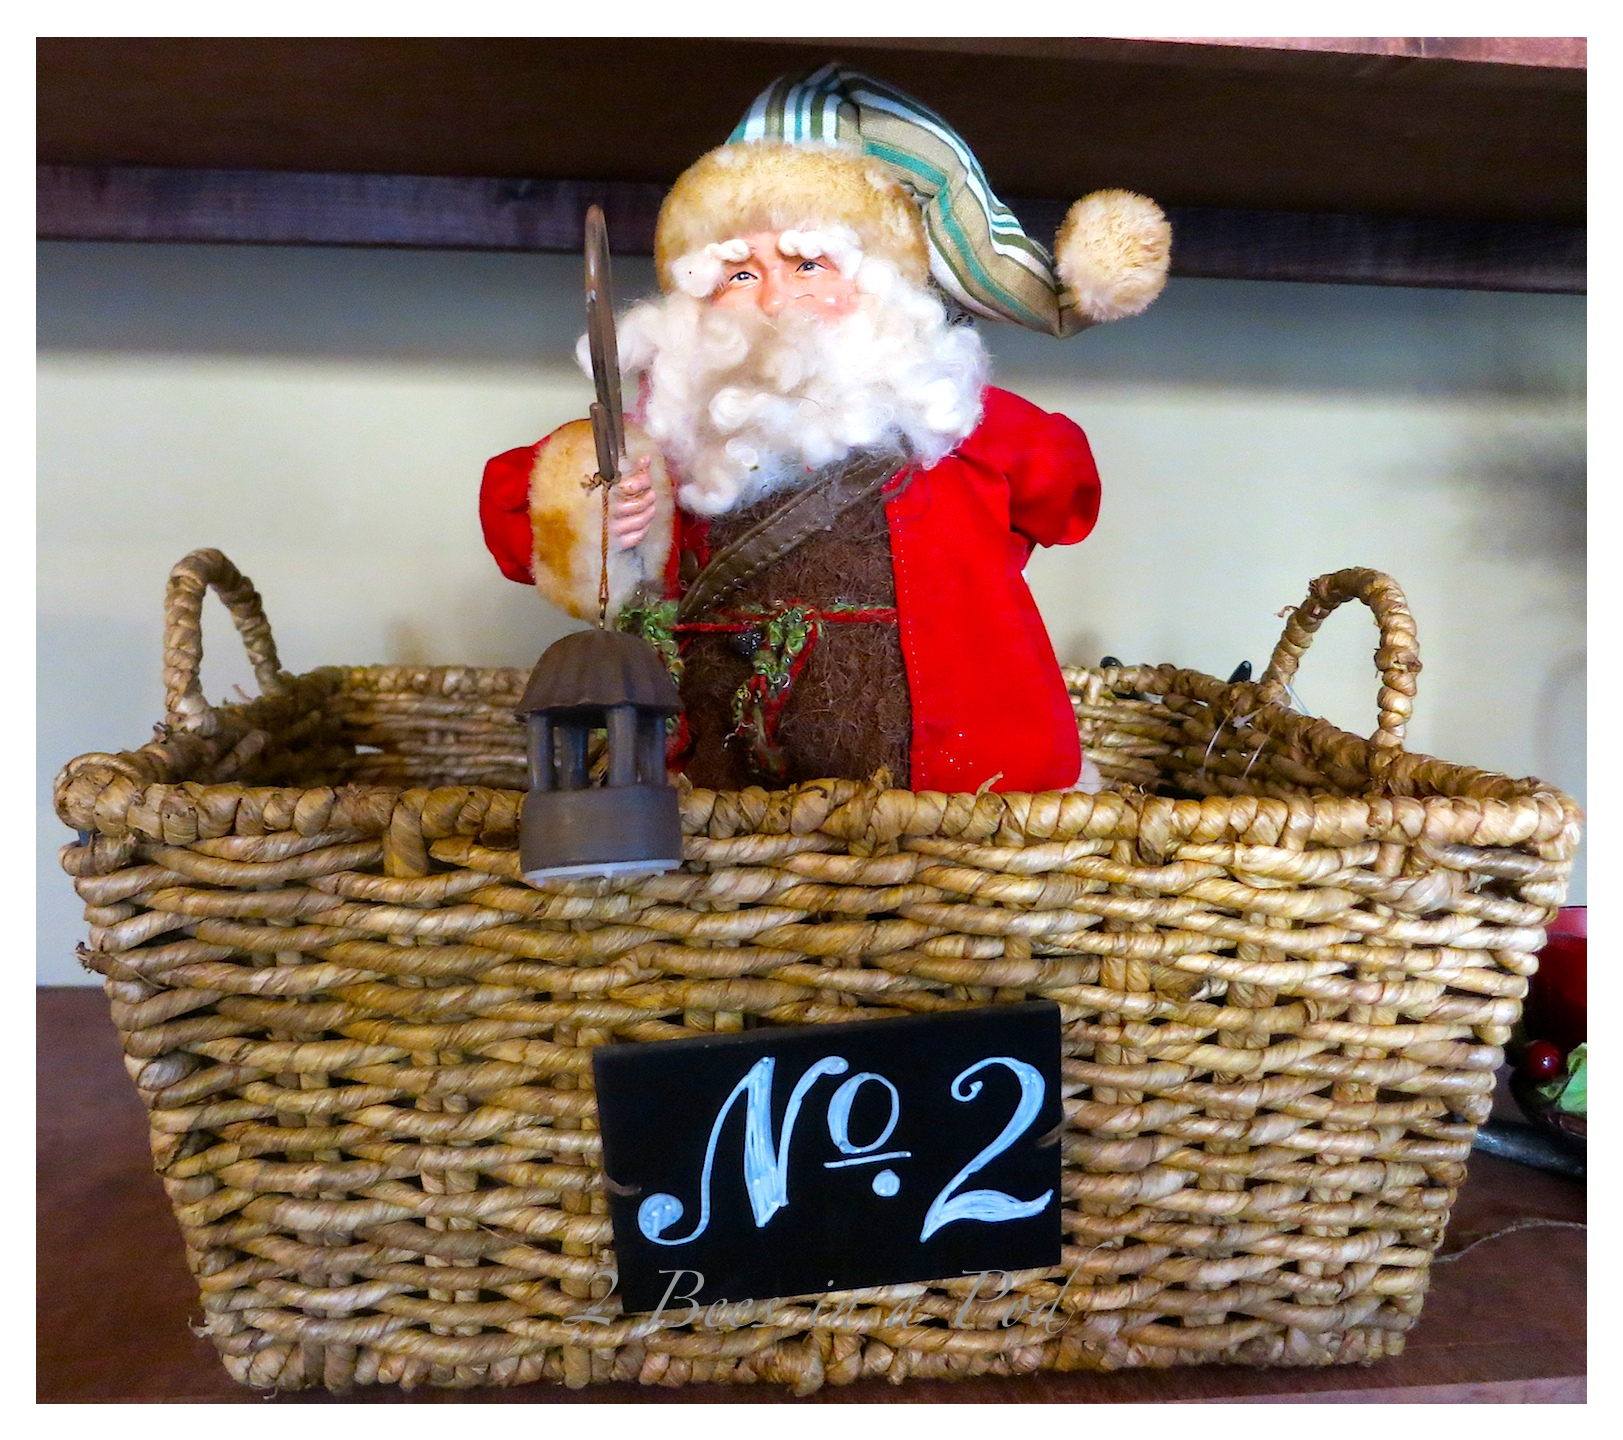 Rustic Christmas - I love the crusty, rusty, chippy and warmth that rustic elements bring to my home for Christmas!I drew the Number 2 chalkboard basket.  This Santa is a vintage replica.